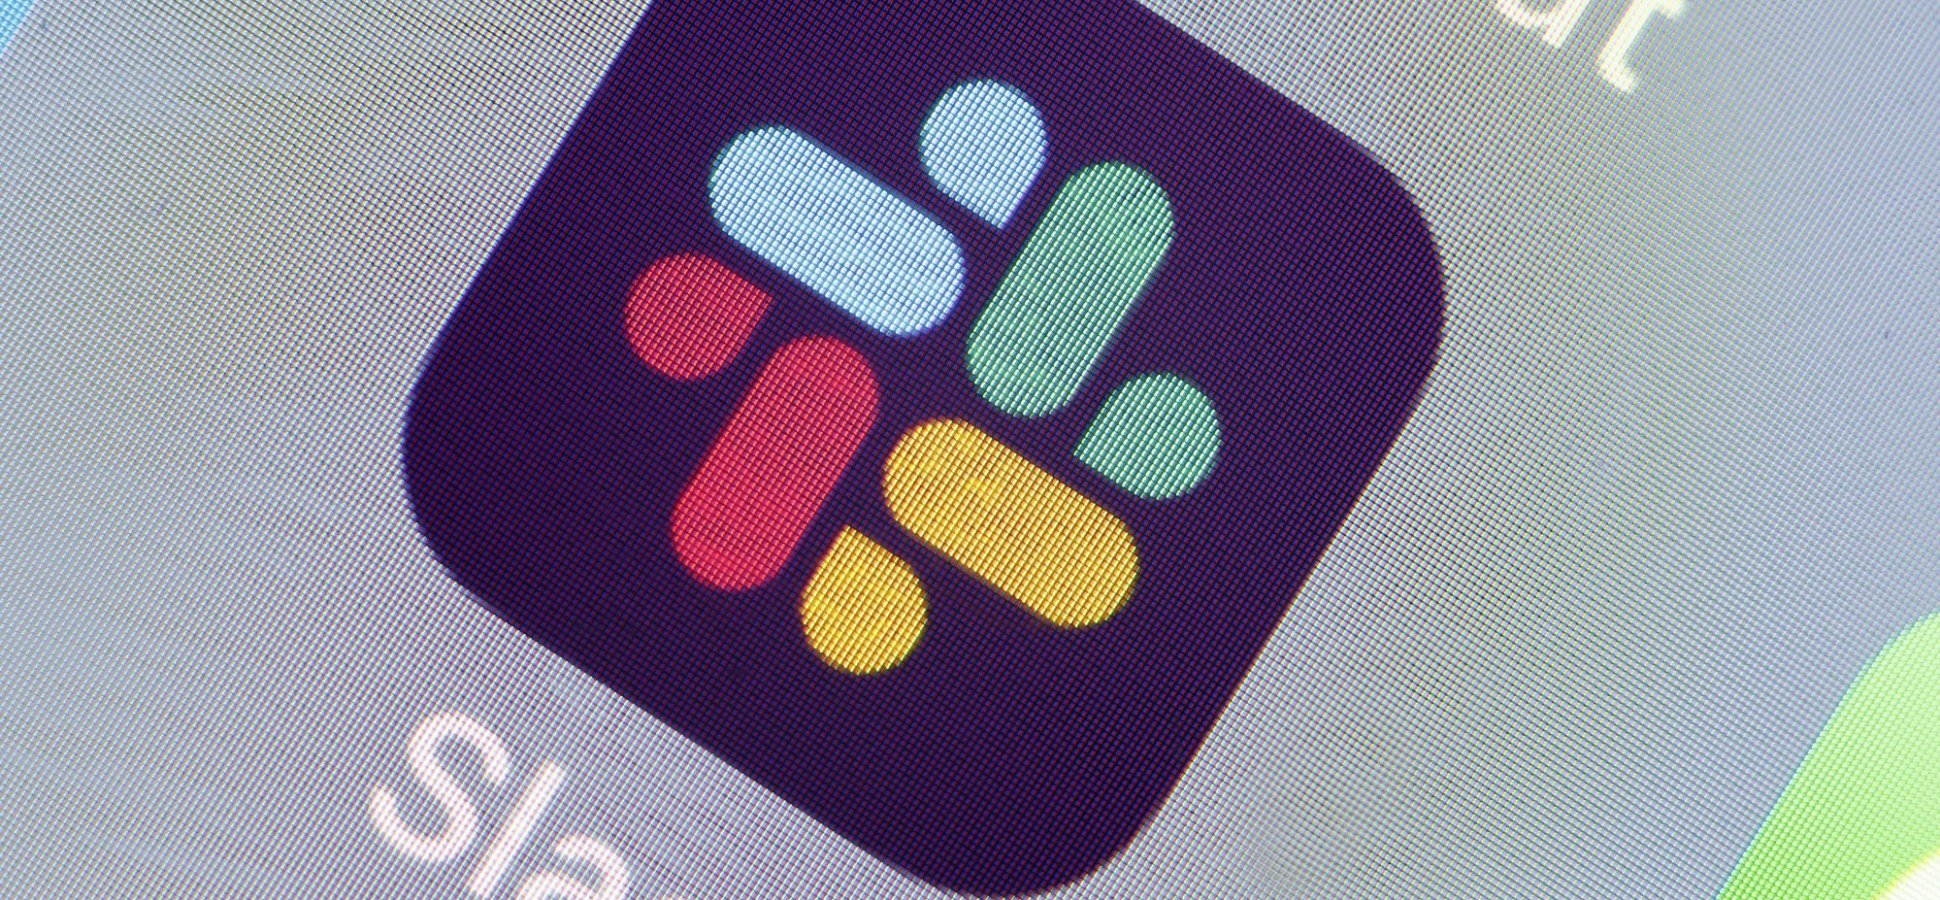 Slack is Going Public Today. Here Are 3 Reasons It's a Big Deal